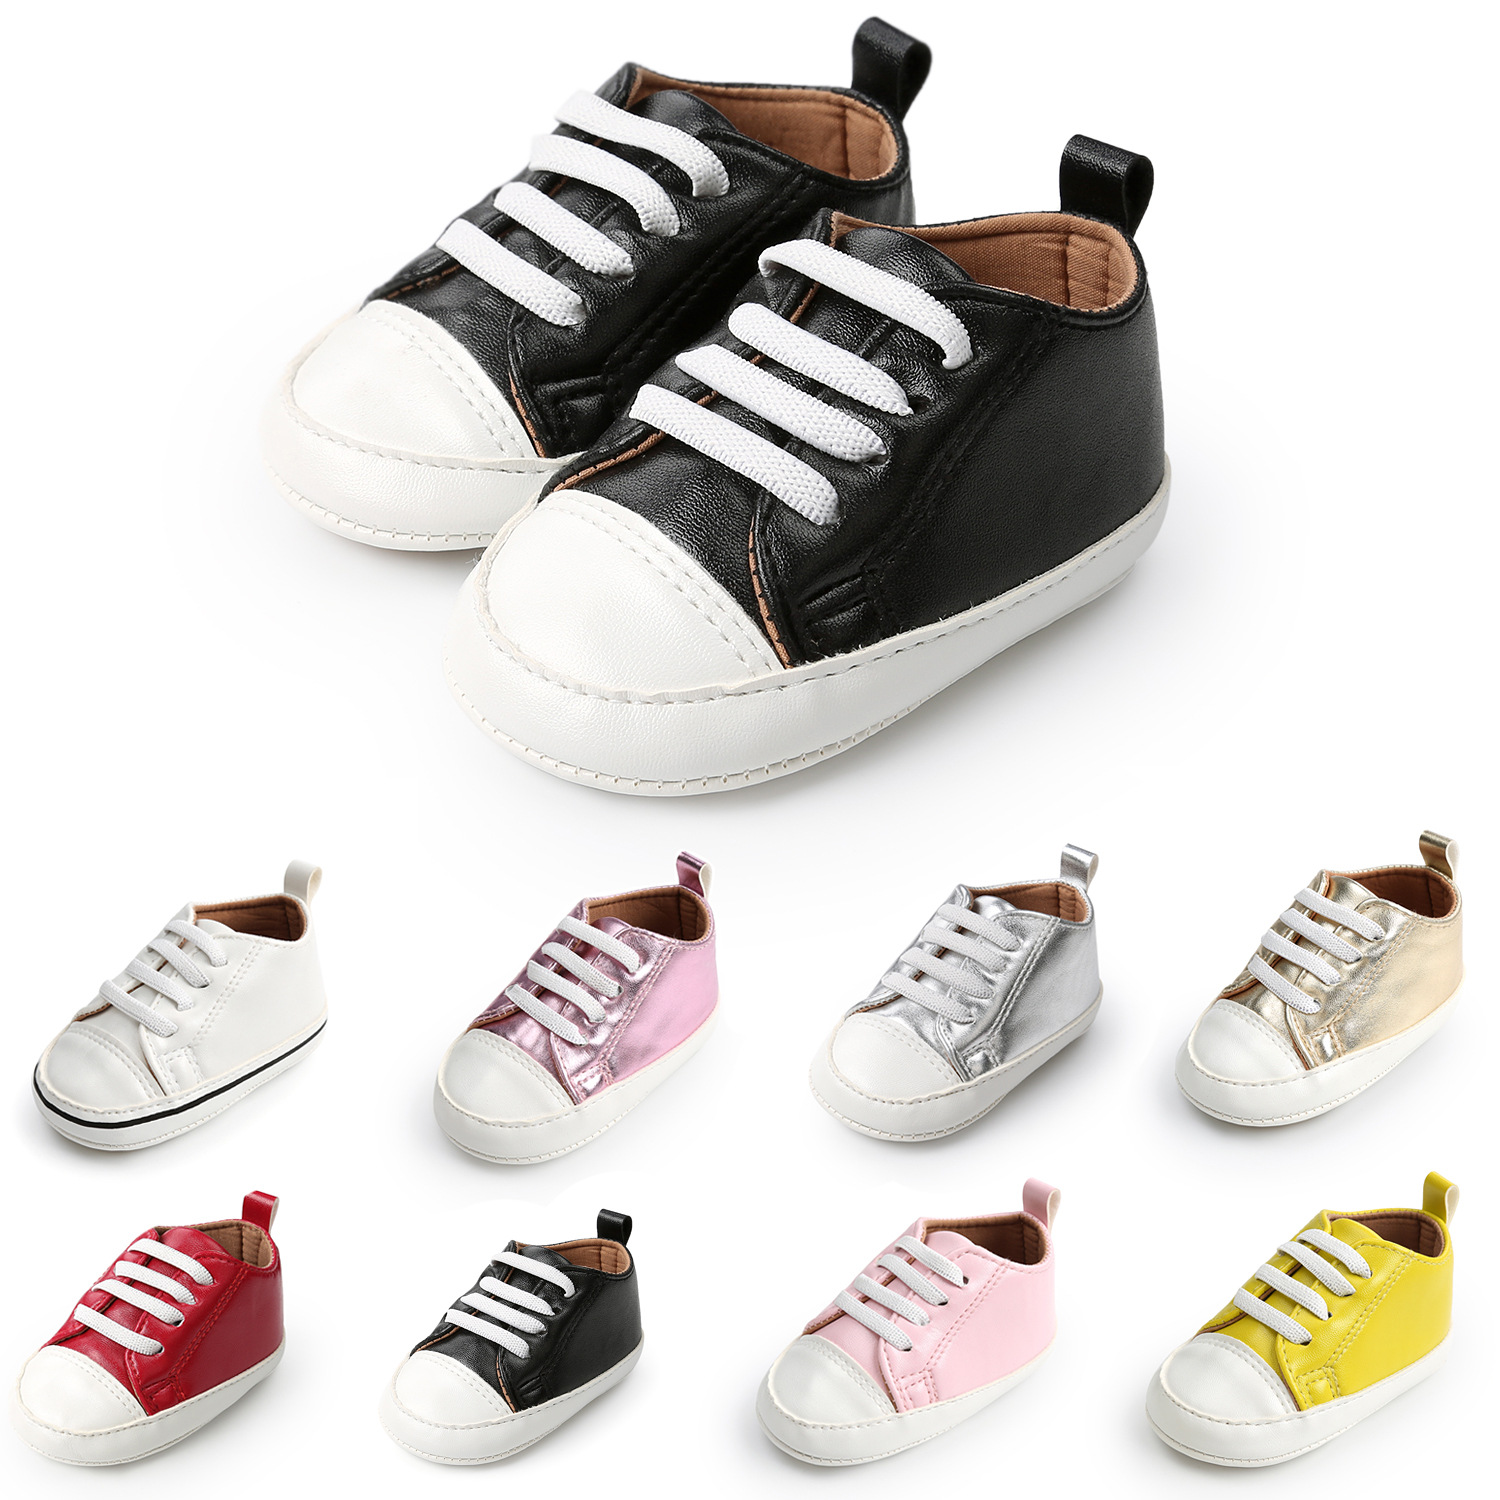 Infant Toddler Stylish Sneakers Baby Boy Girl kids Crib Shoes Newborn to 24month